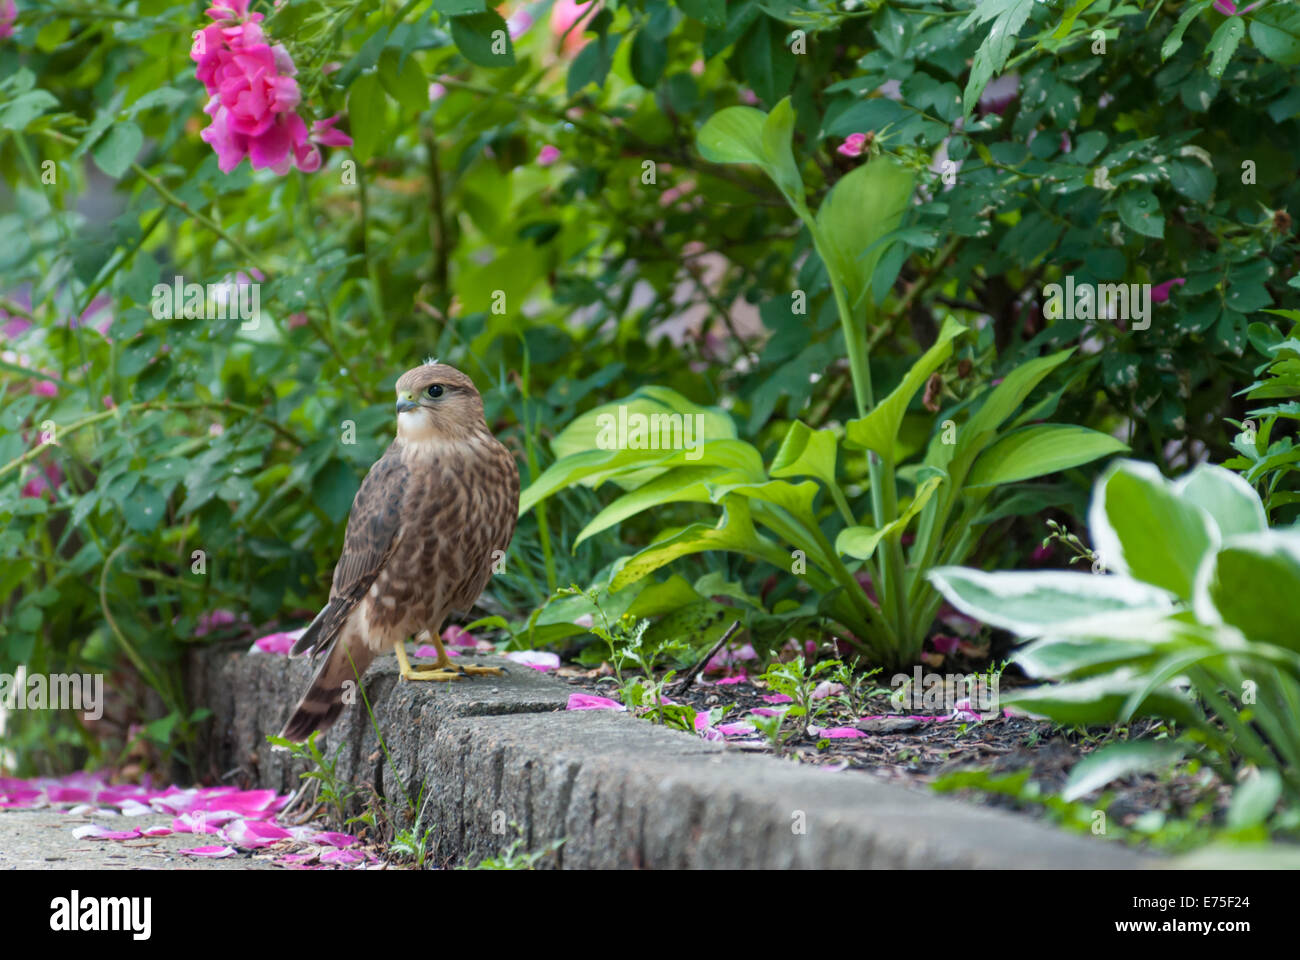 a-merlin-falco-columbarius-standing-on-a